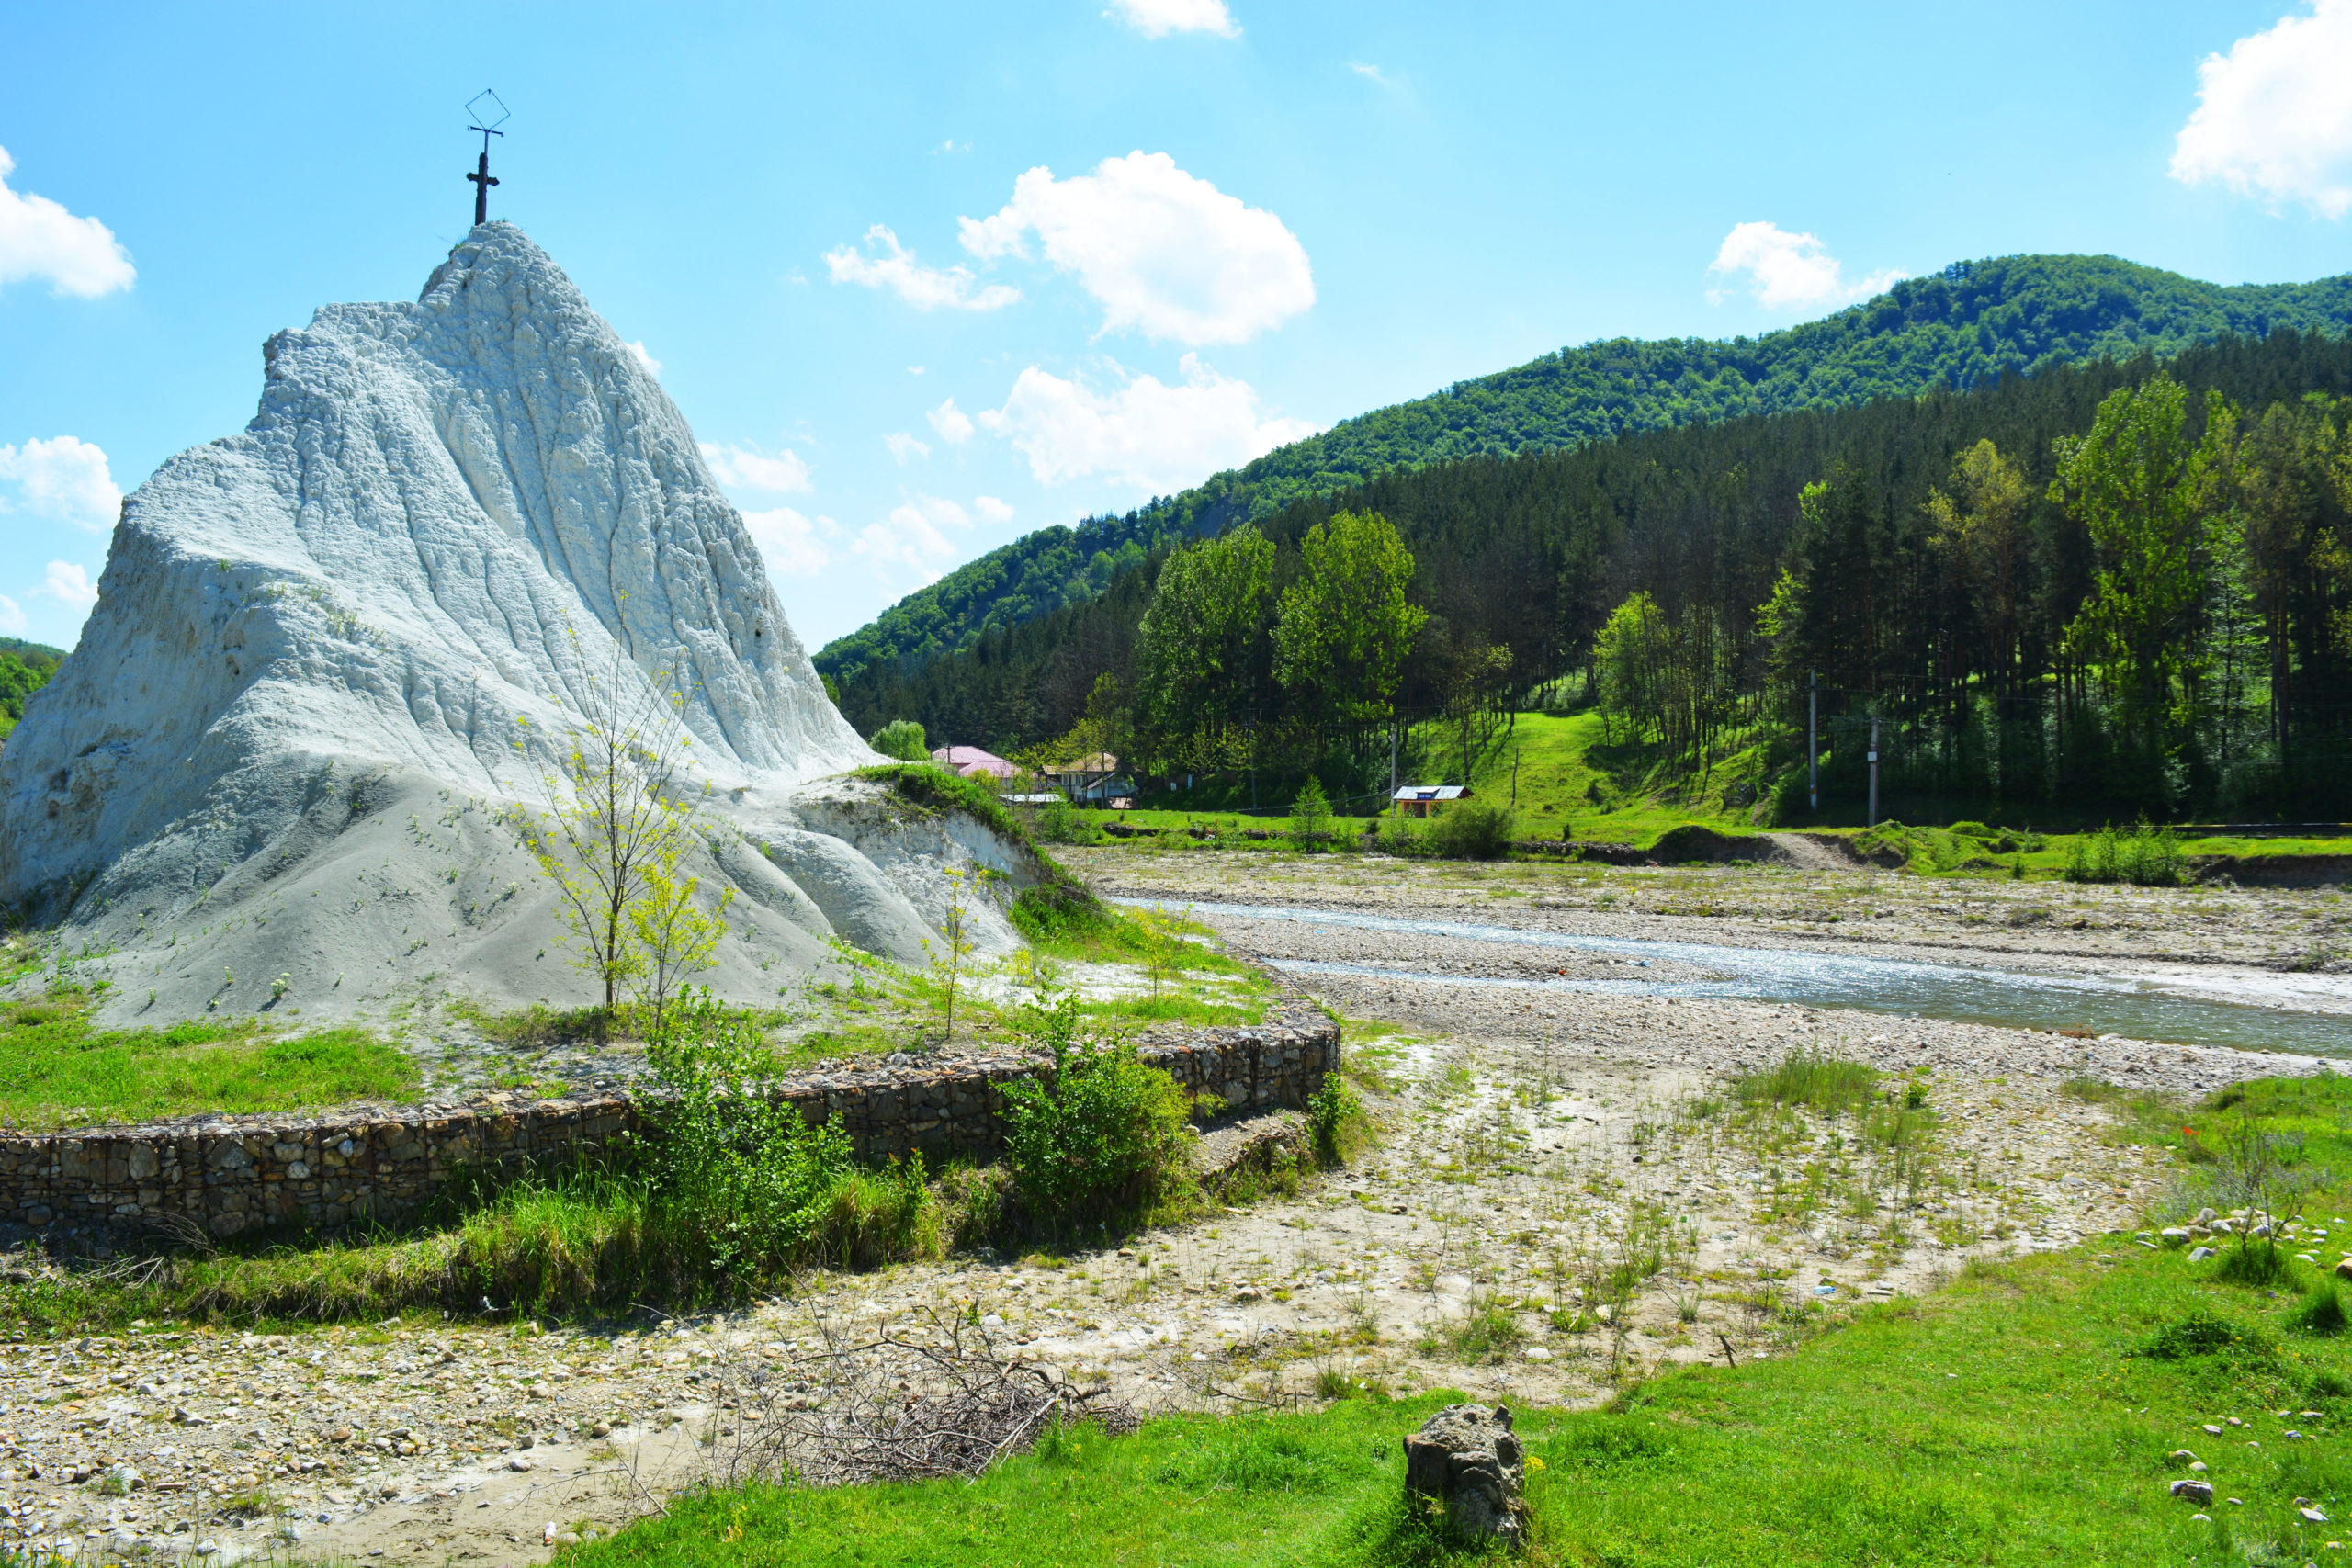 White Rock of Grunj – a spectacular rock in Buzau land